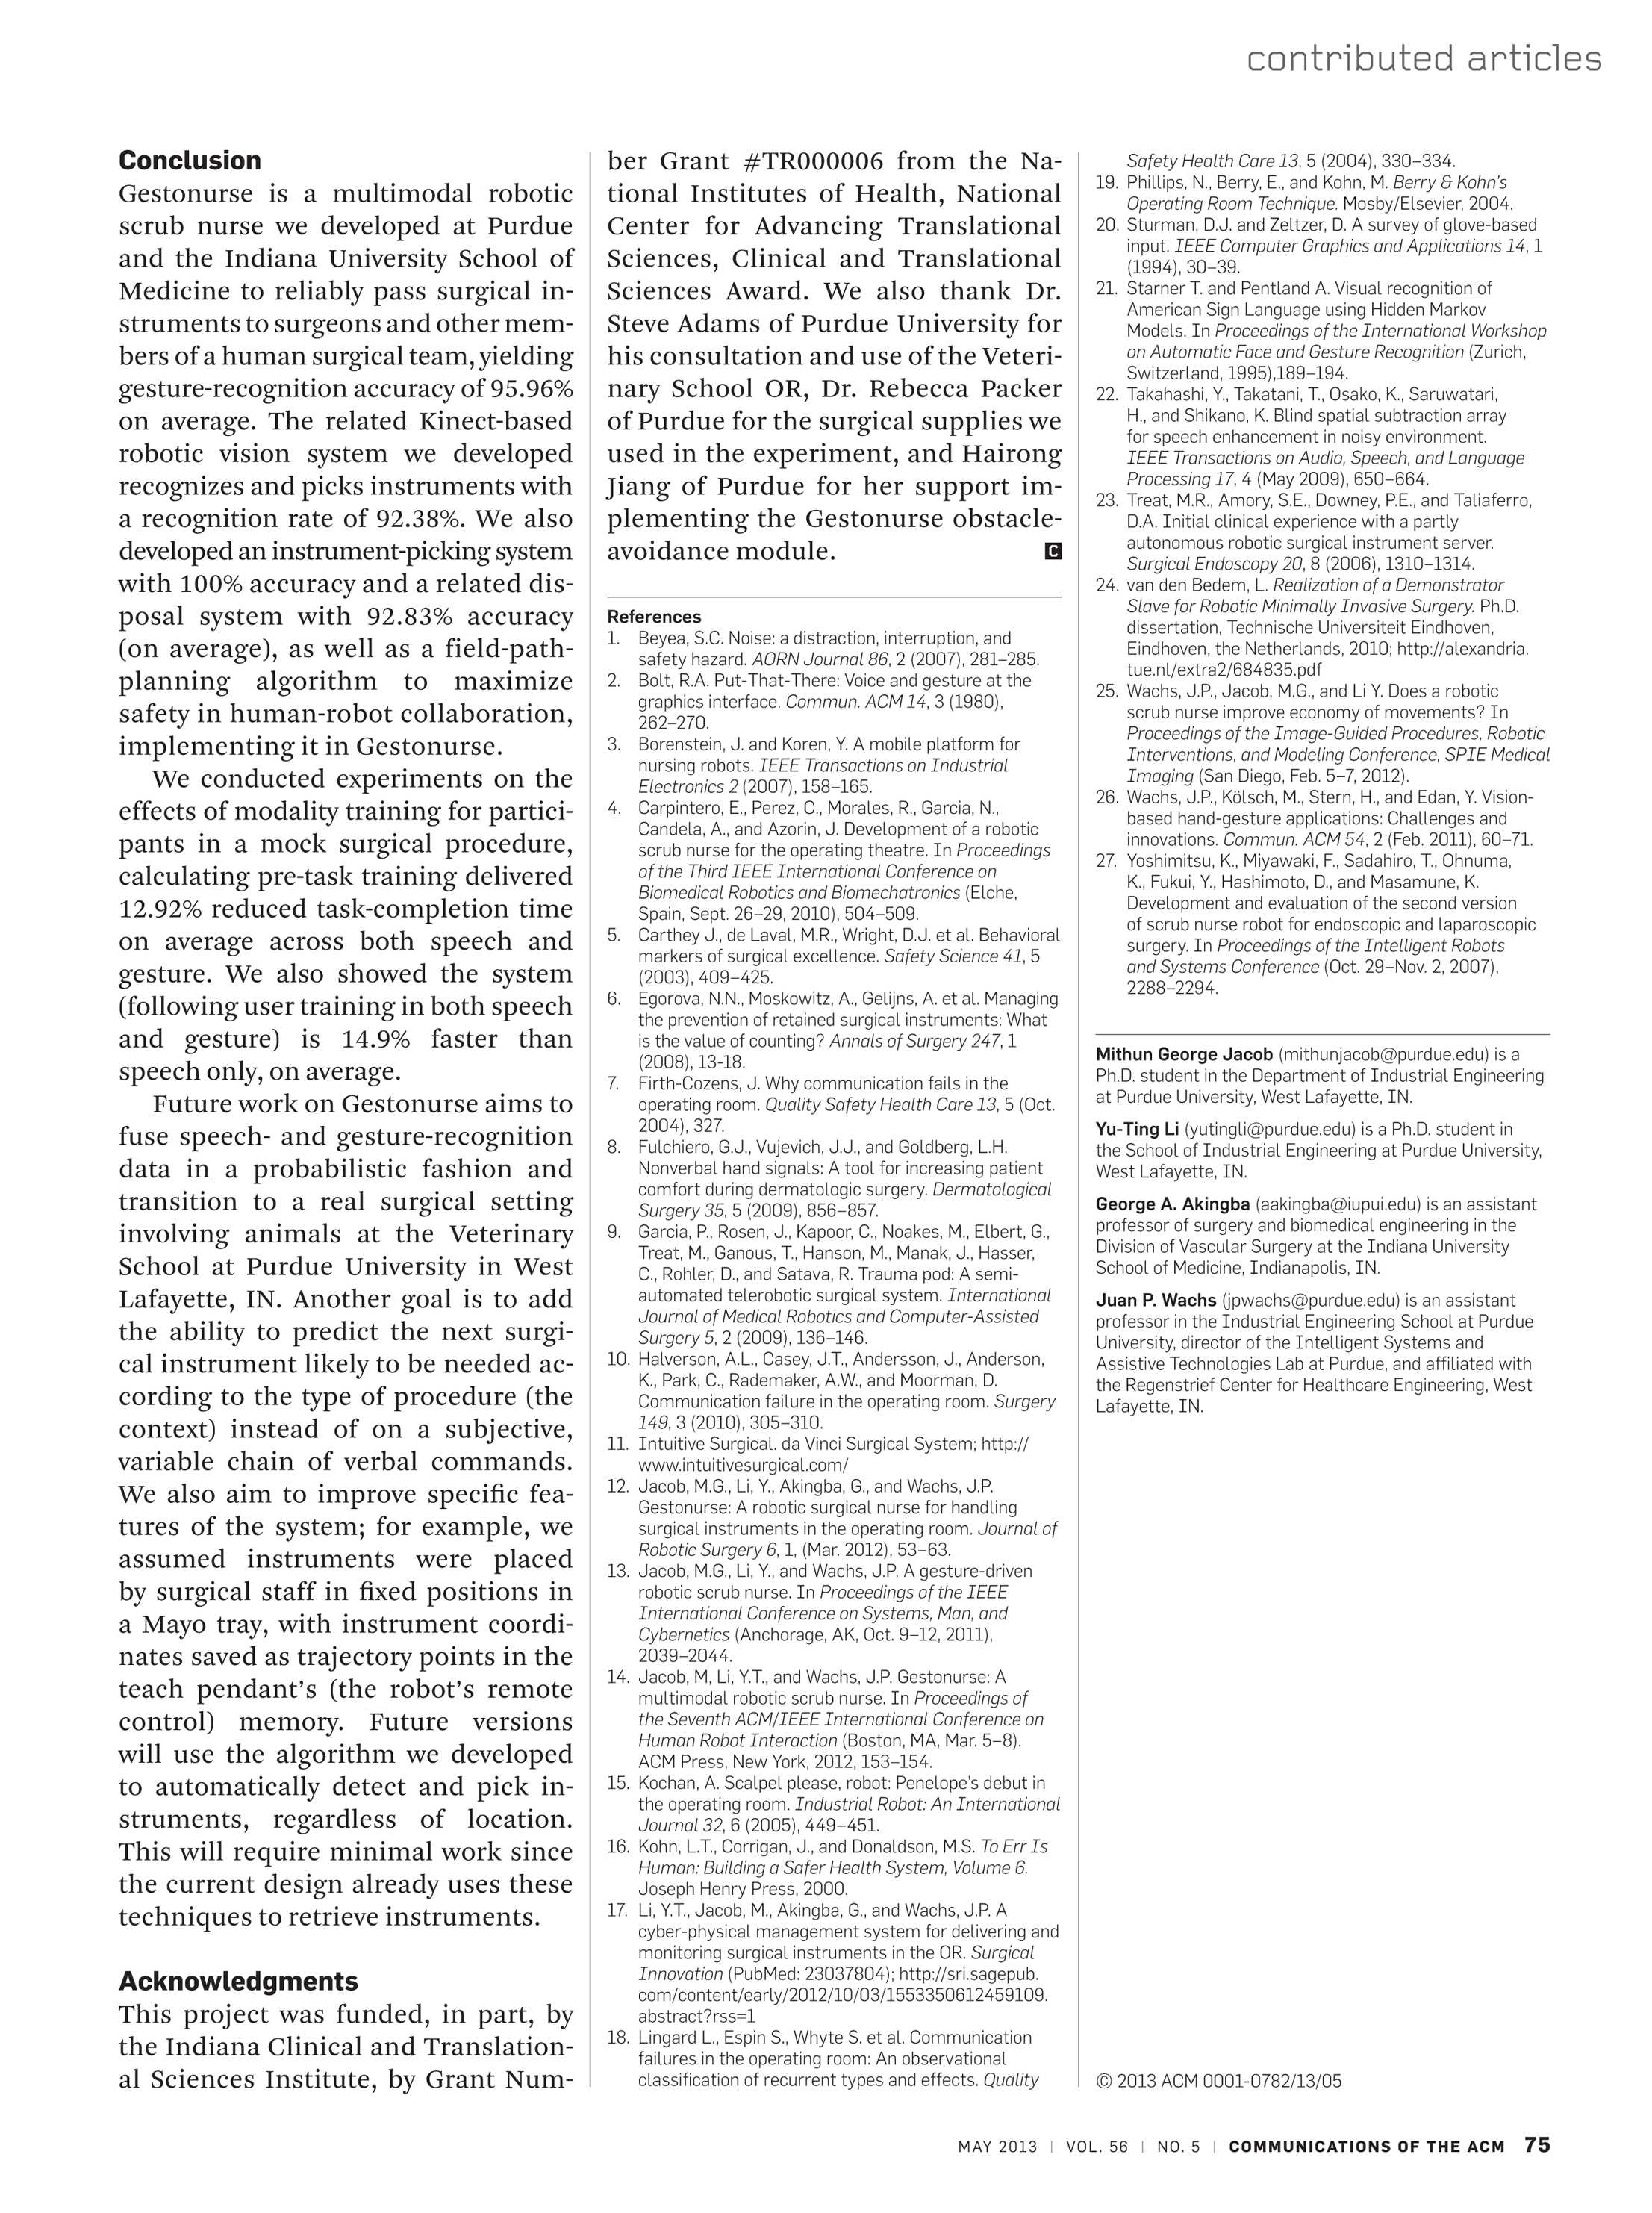 Communications of the ACM - May 2013 - page 75